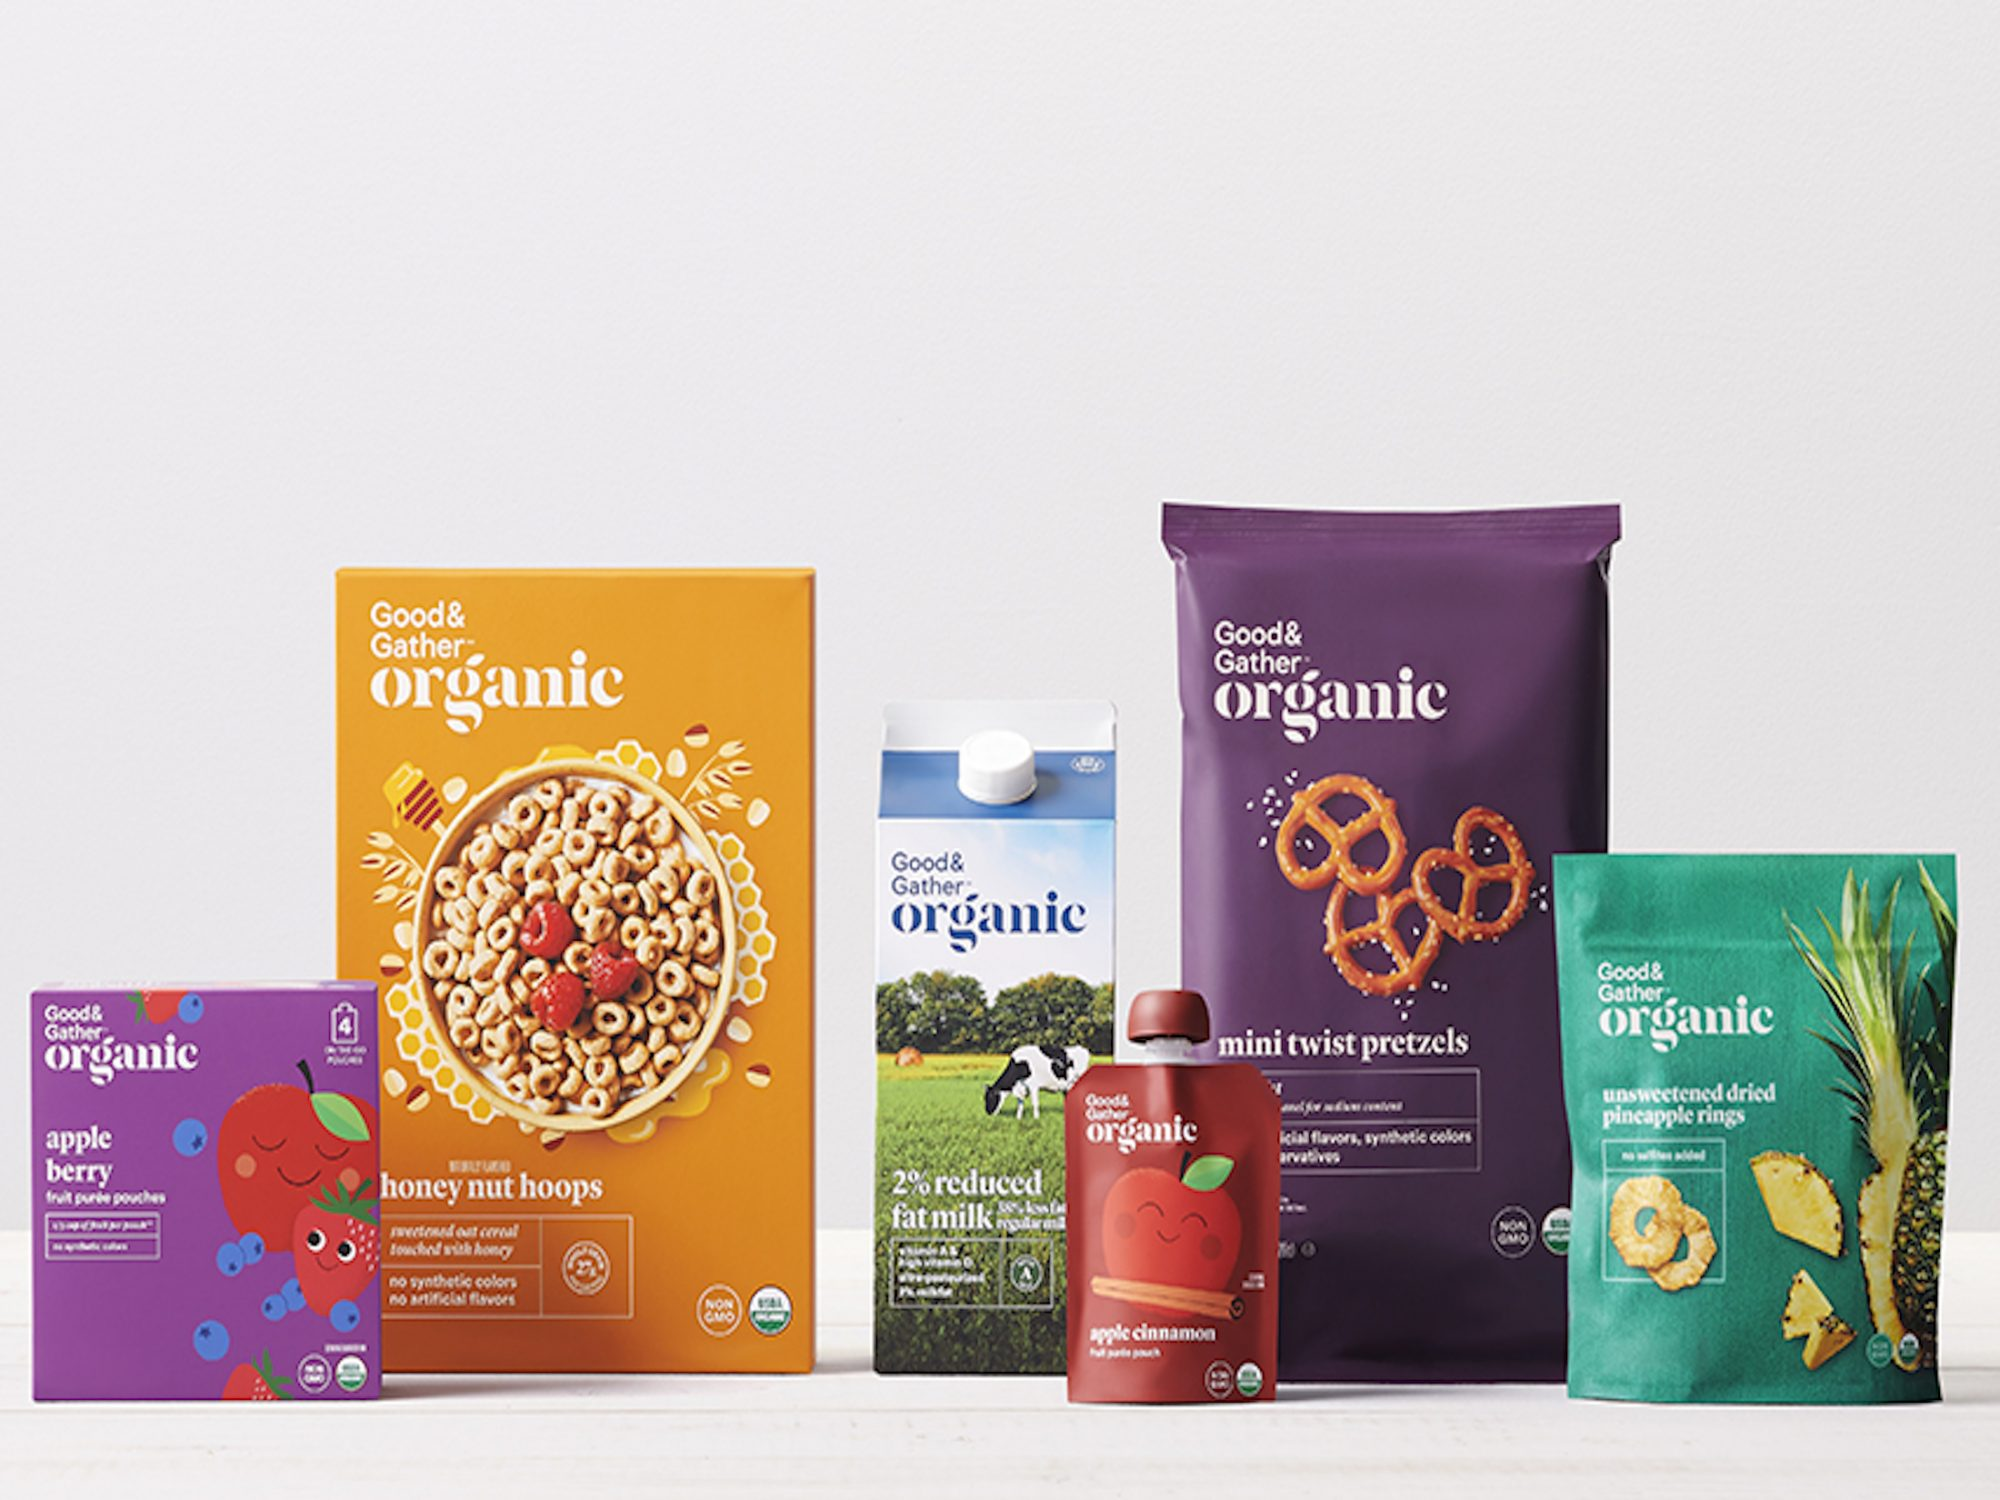 Target's Launching a Better-For-You Food Brand